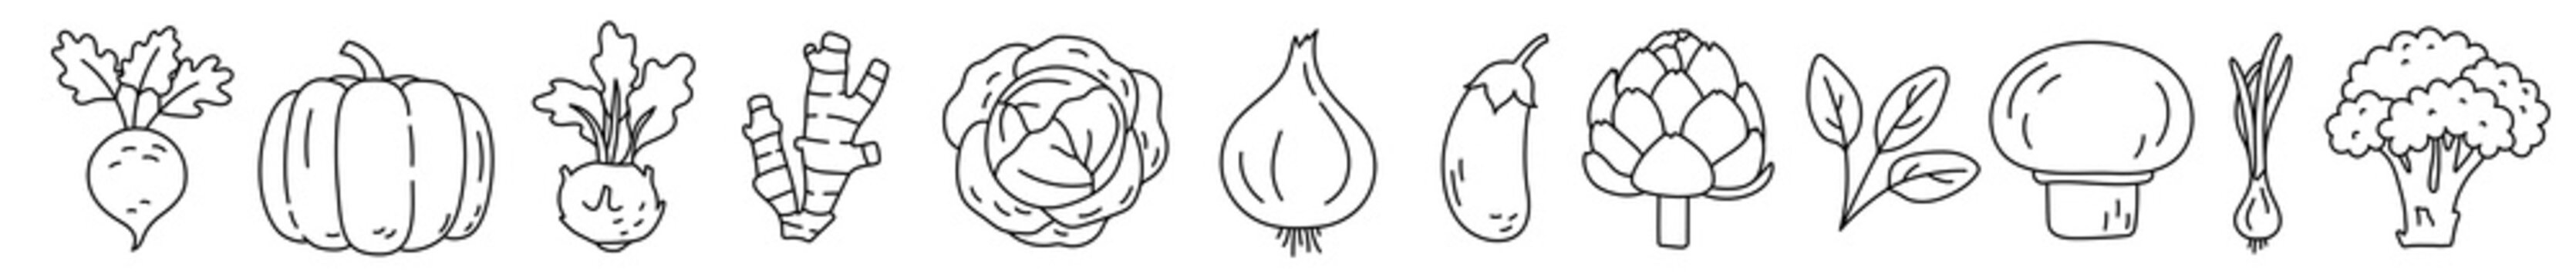 Vegetable sketch. Thin simple outline icon. Black contour line vector set. Beet, pumpkin, kohlrabi, ginger and cabbage. Onion, eggplant, artichoke, spinach, mushroom and broccoli